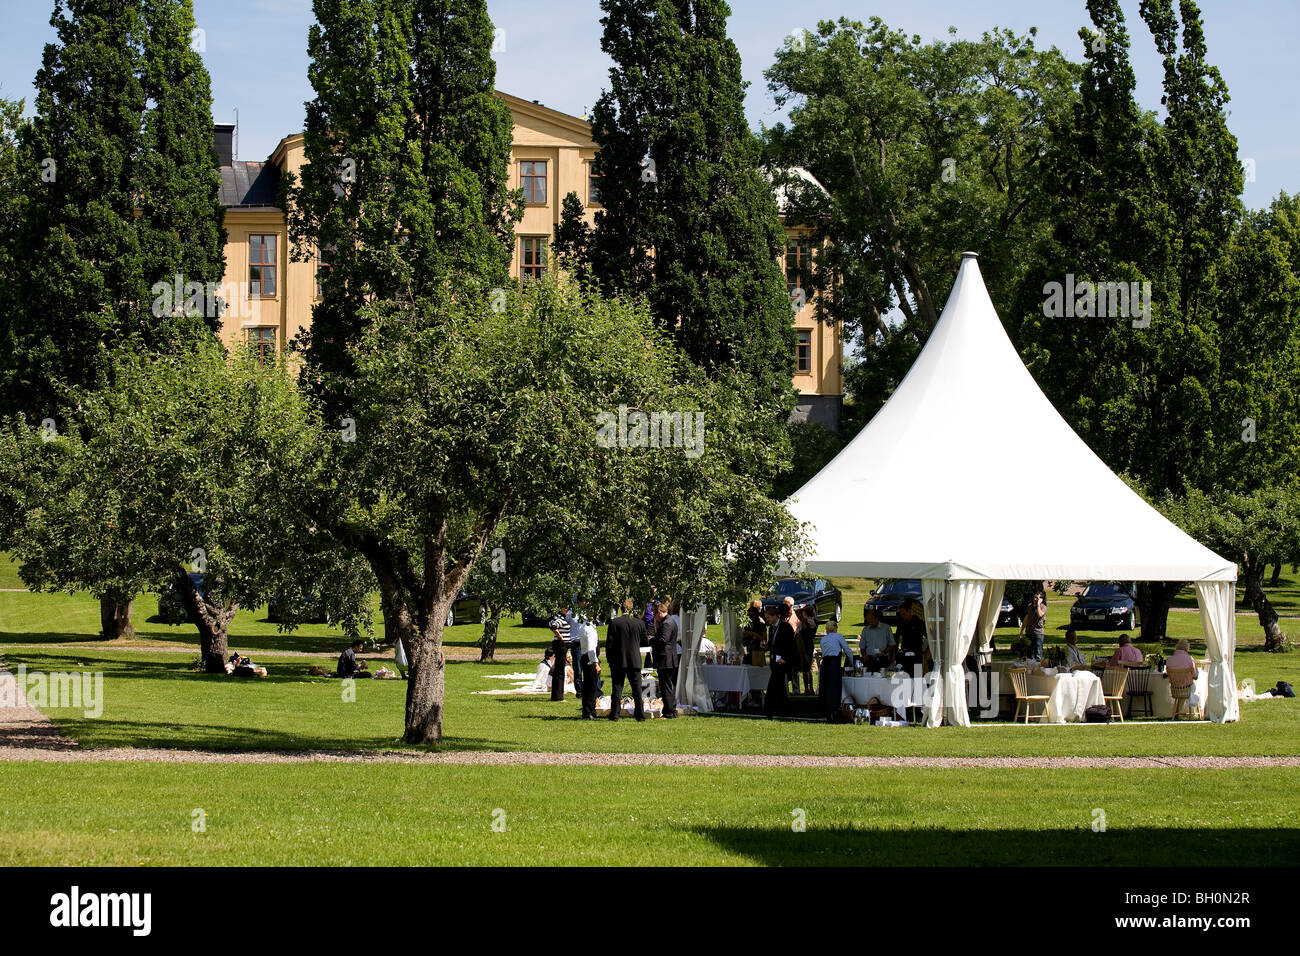 Sweden, Stockholm periphery, picnic, food, outdoors - Stock Image